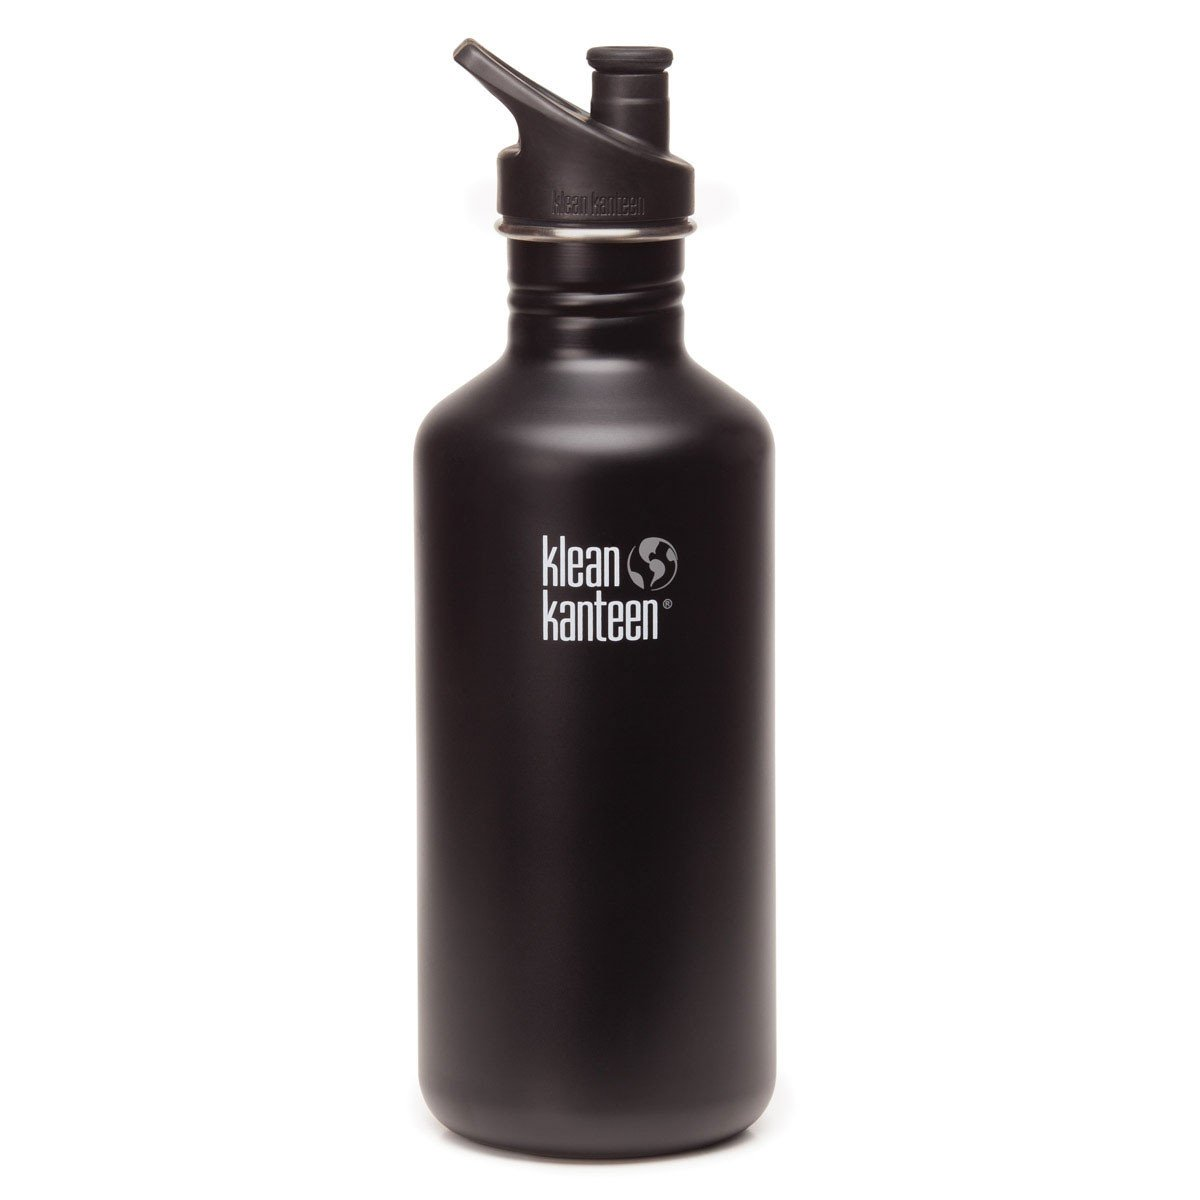 Klean Kanteen Stainless Steel Classic Water Bottle Klean Kanteen Water Bottles 1182ml 40oz / Shale Black at Little Earth Nest Eco Shop